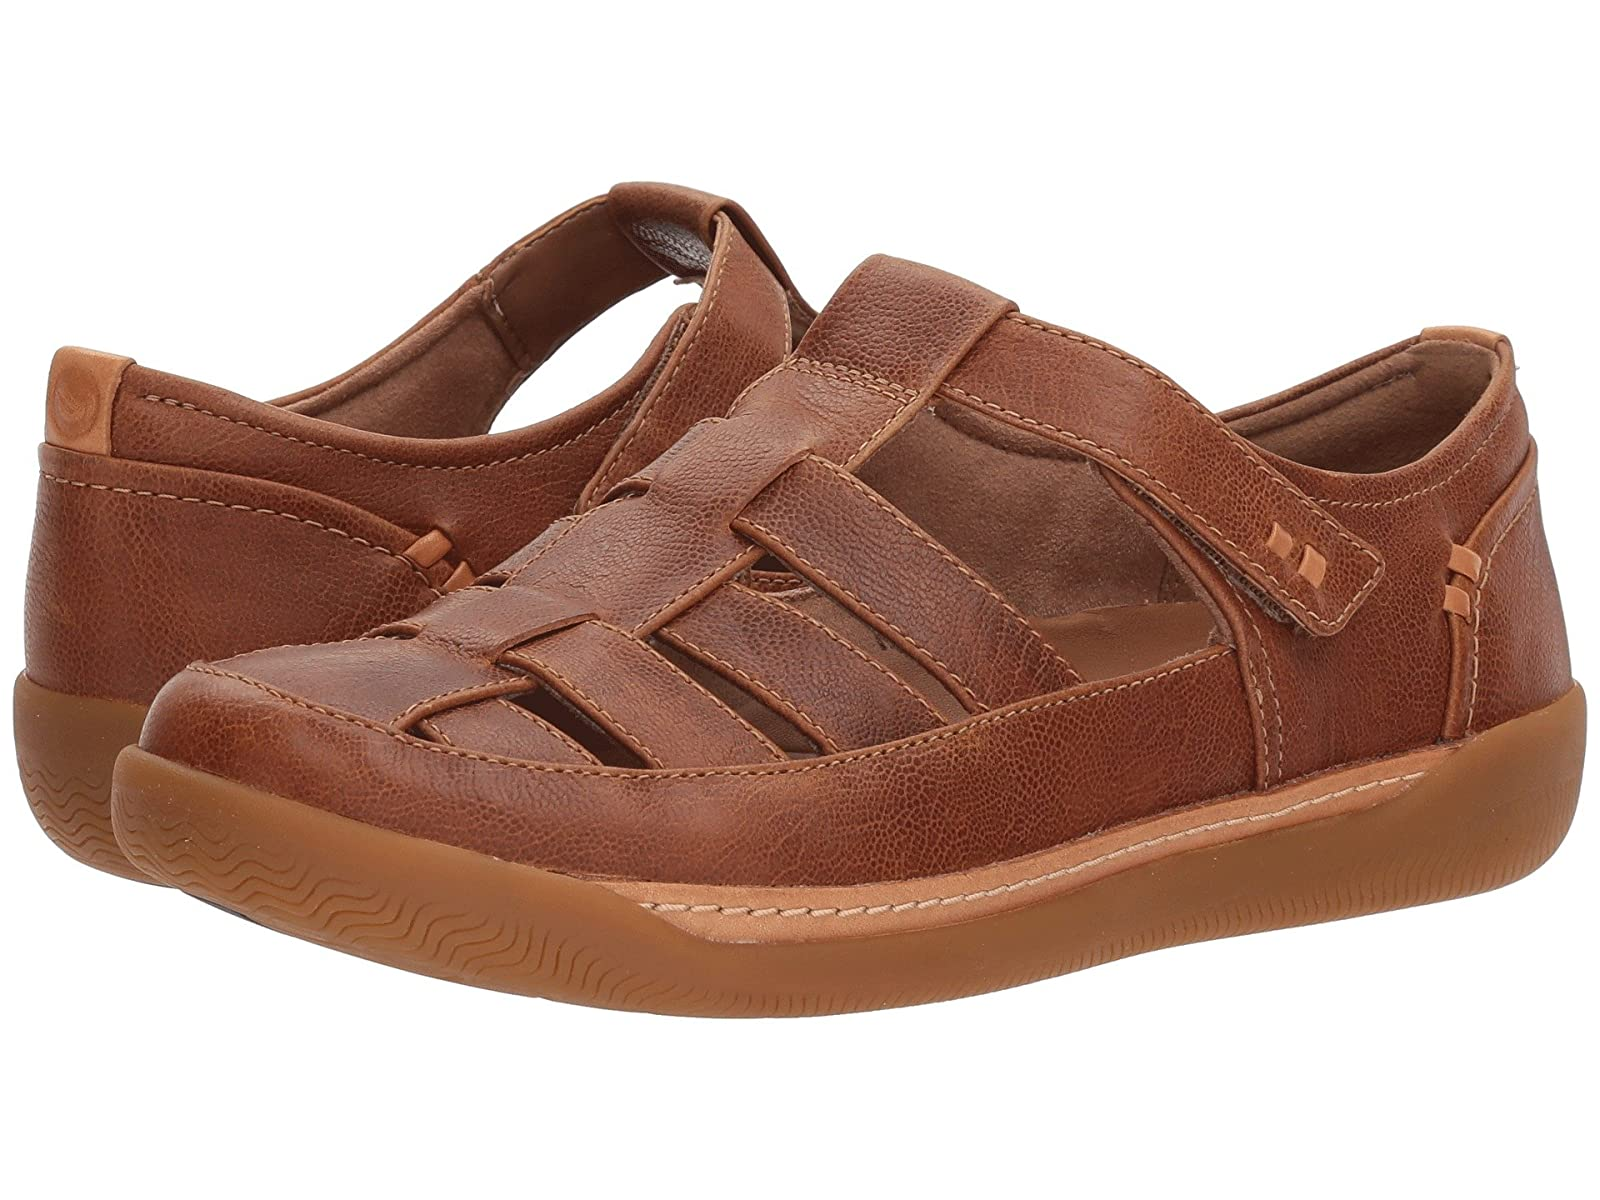 Clarks Un Haven CoveCheap and distinctive eye-catching shoes